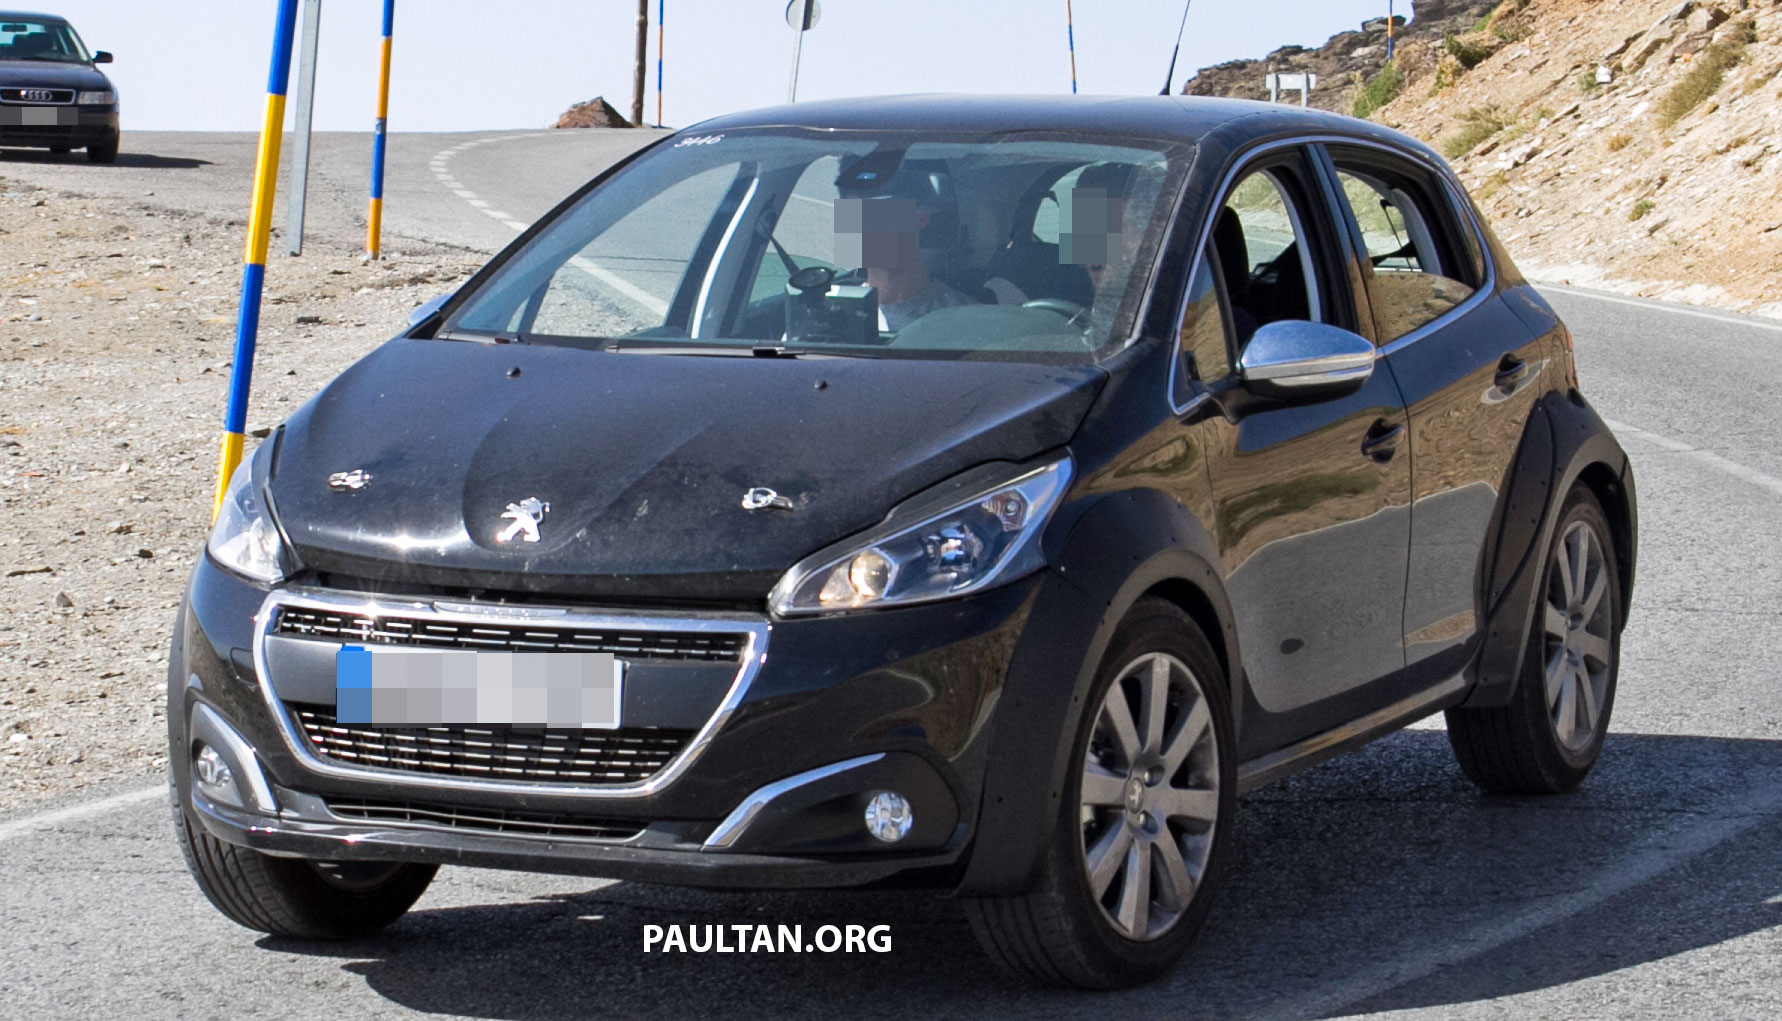 Spyshots Peugeot 1008 Compact Crossover On Test